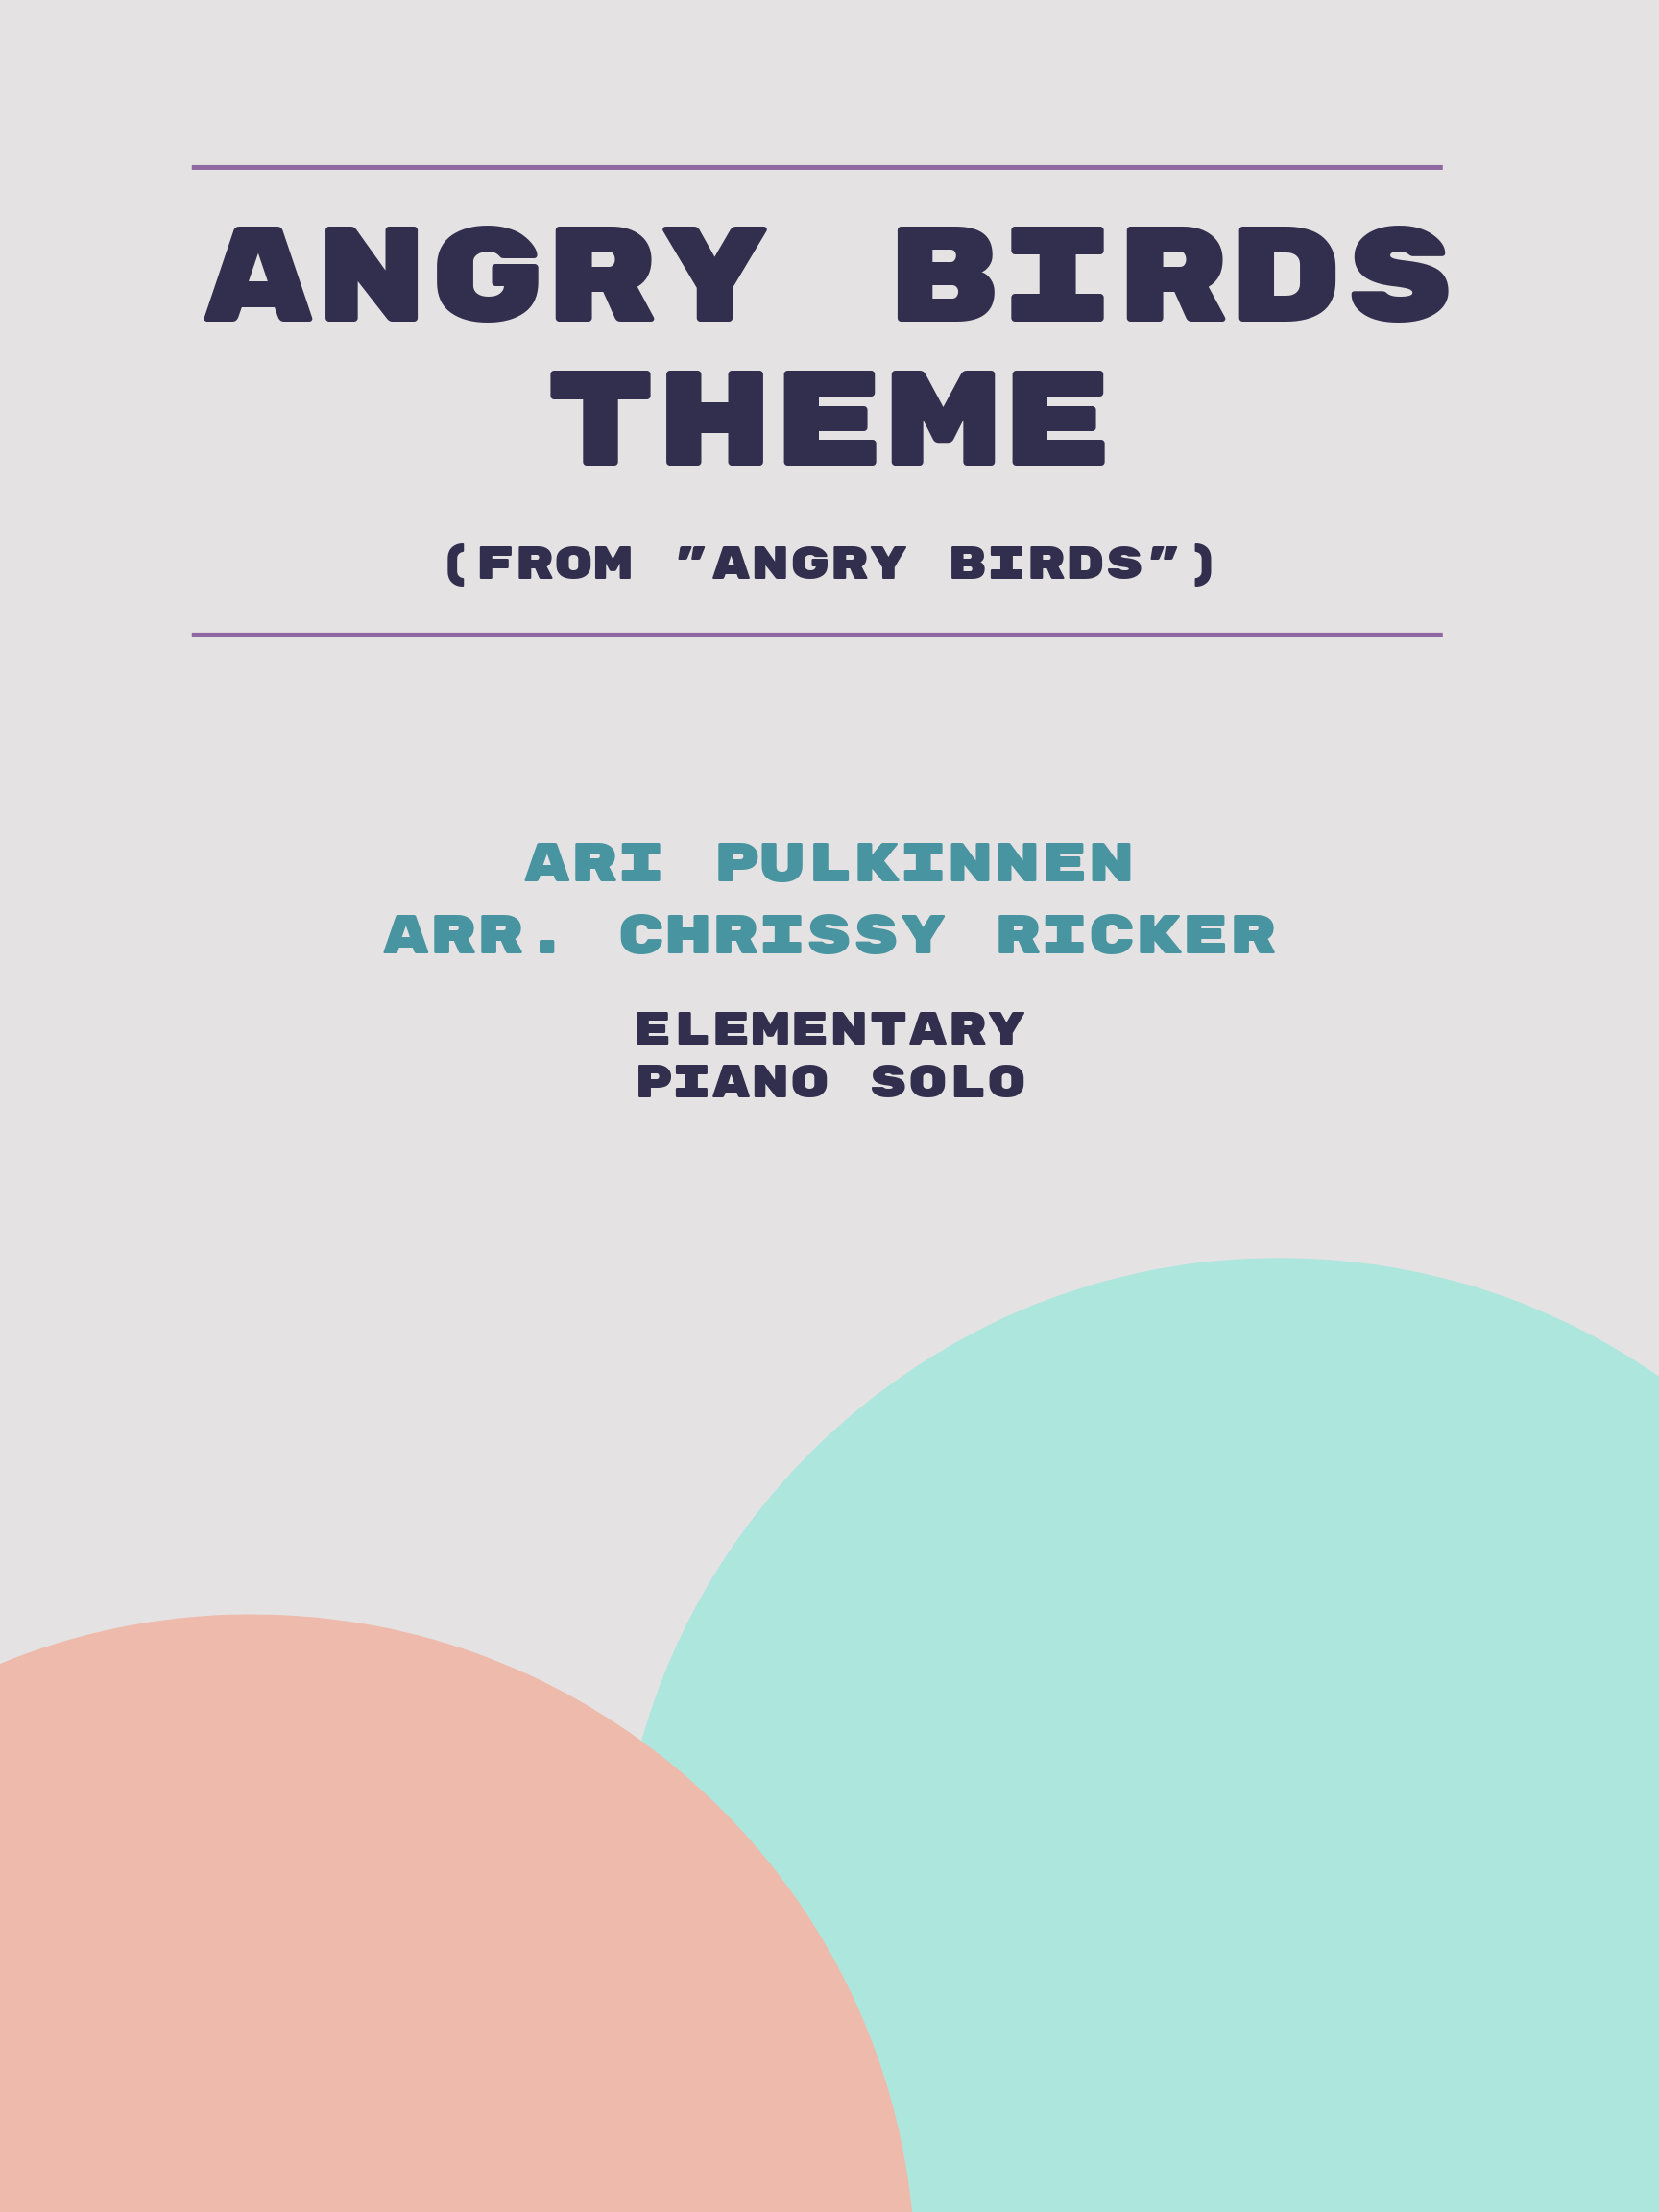 Angry Birds Theme by Ari Pulkinnen